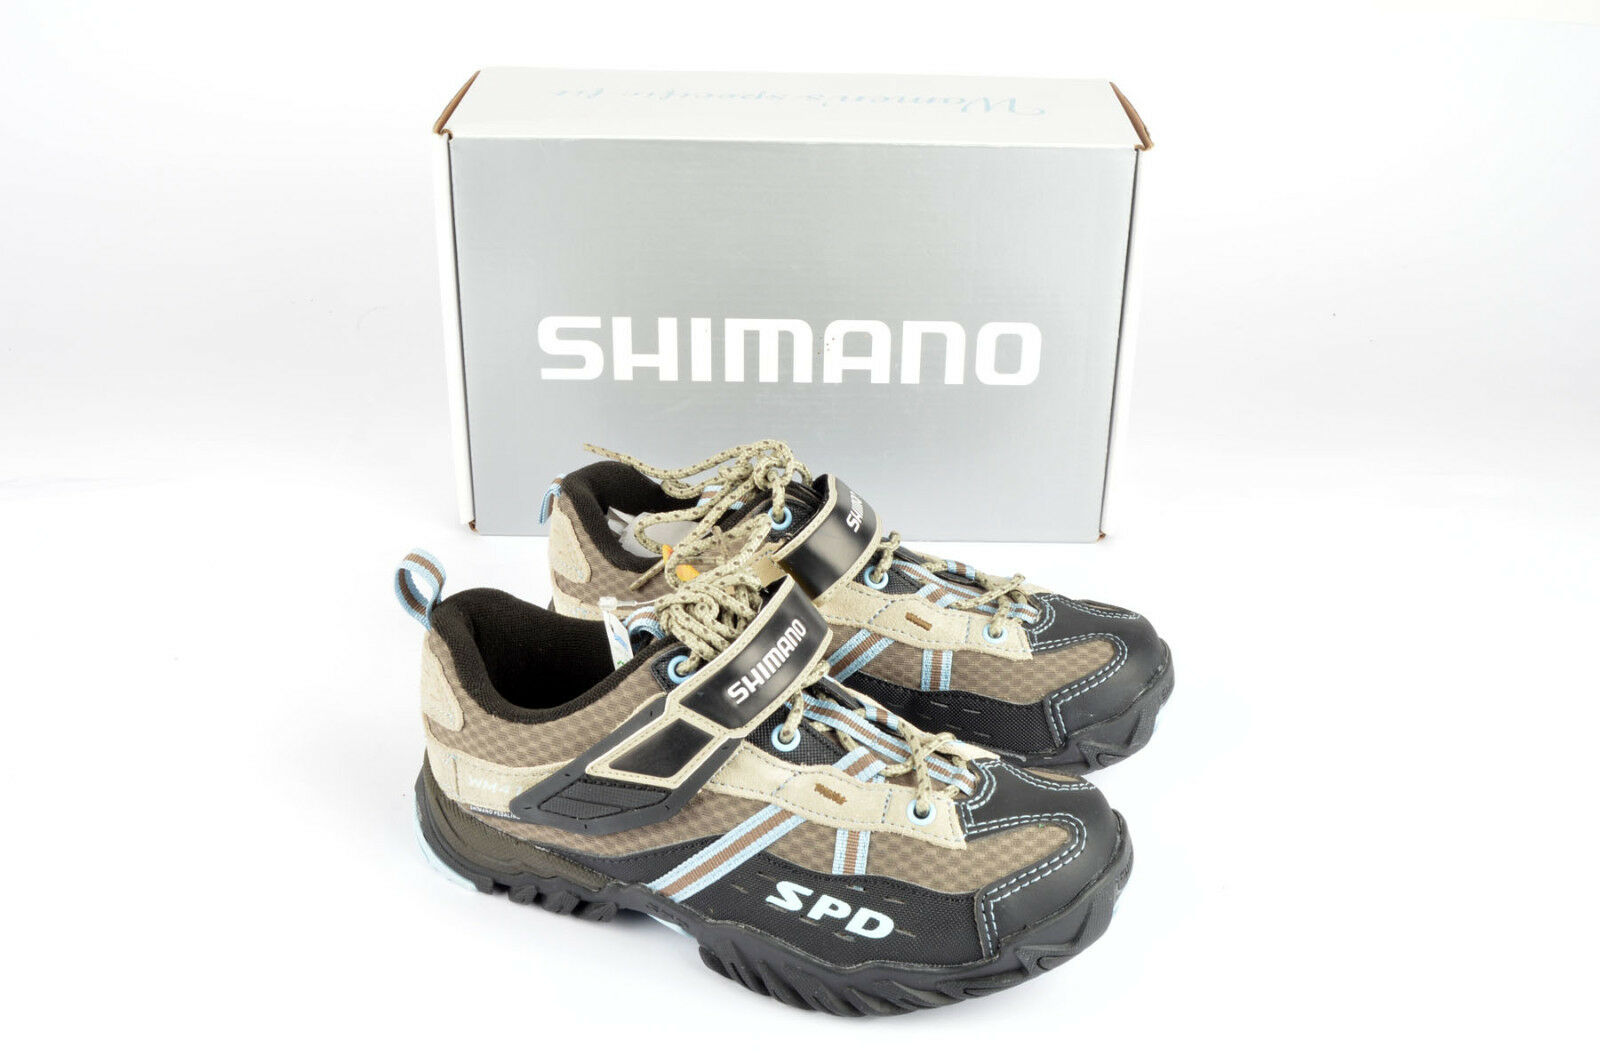 NEW Shimano  SH-WM41  Cycle shoes in size 36 NOS NIB  low-key luxury connotation